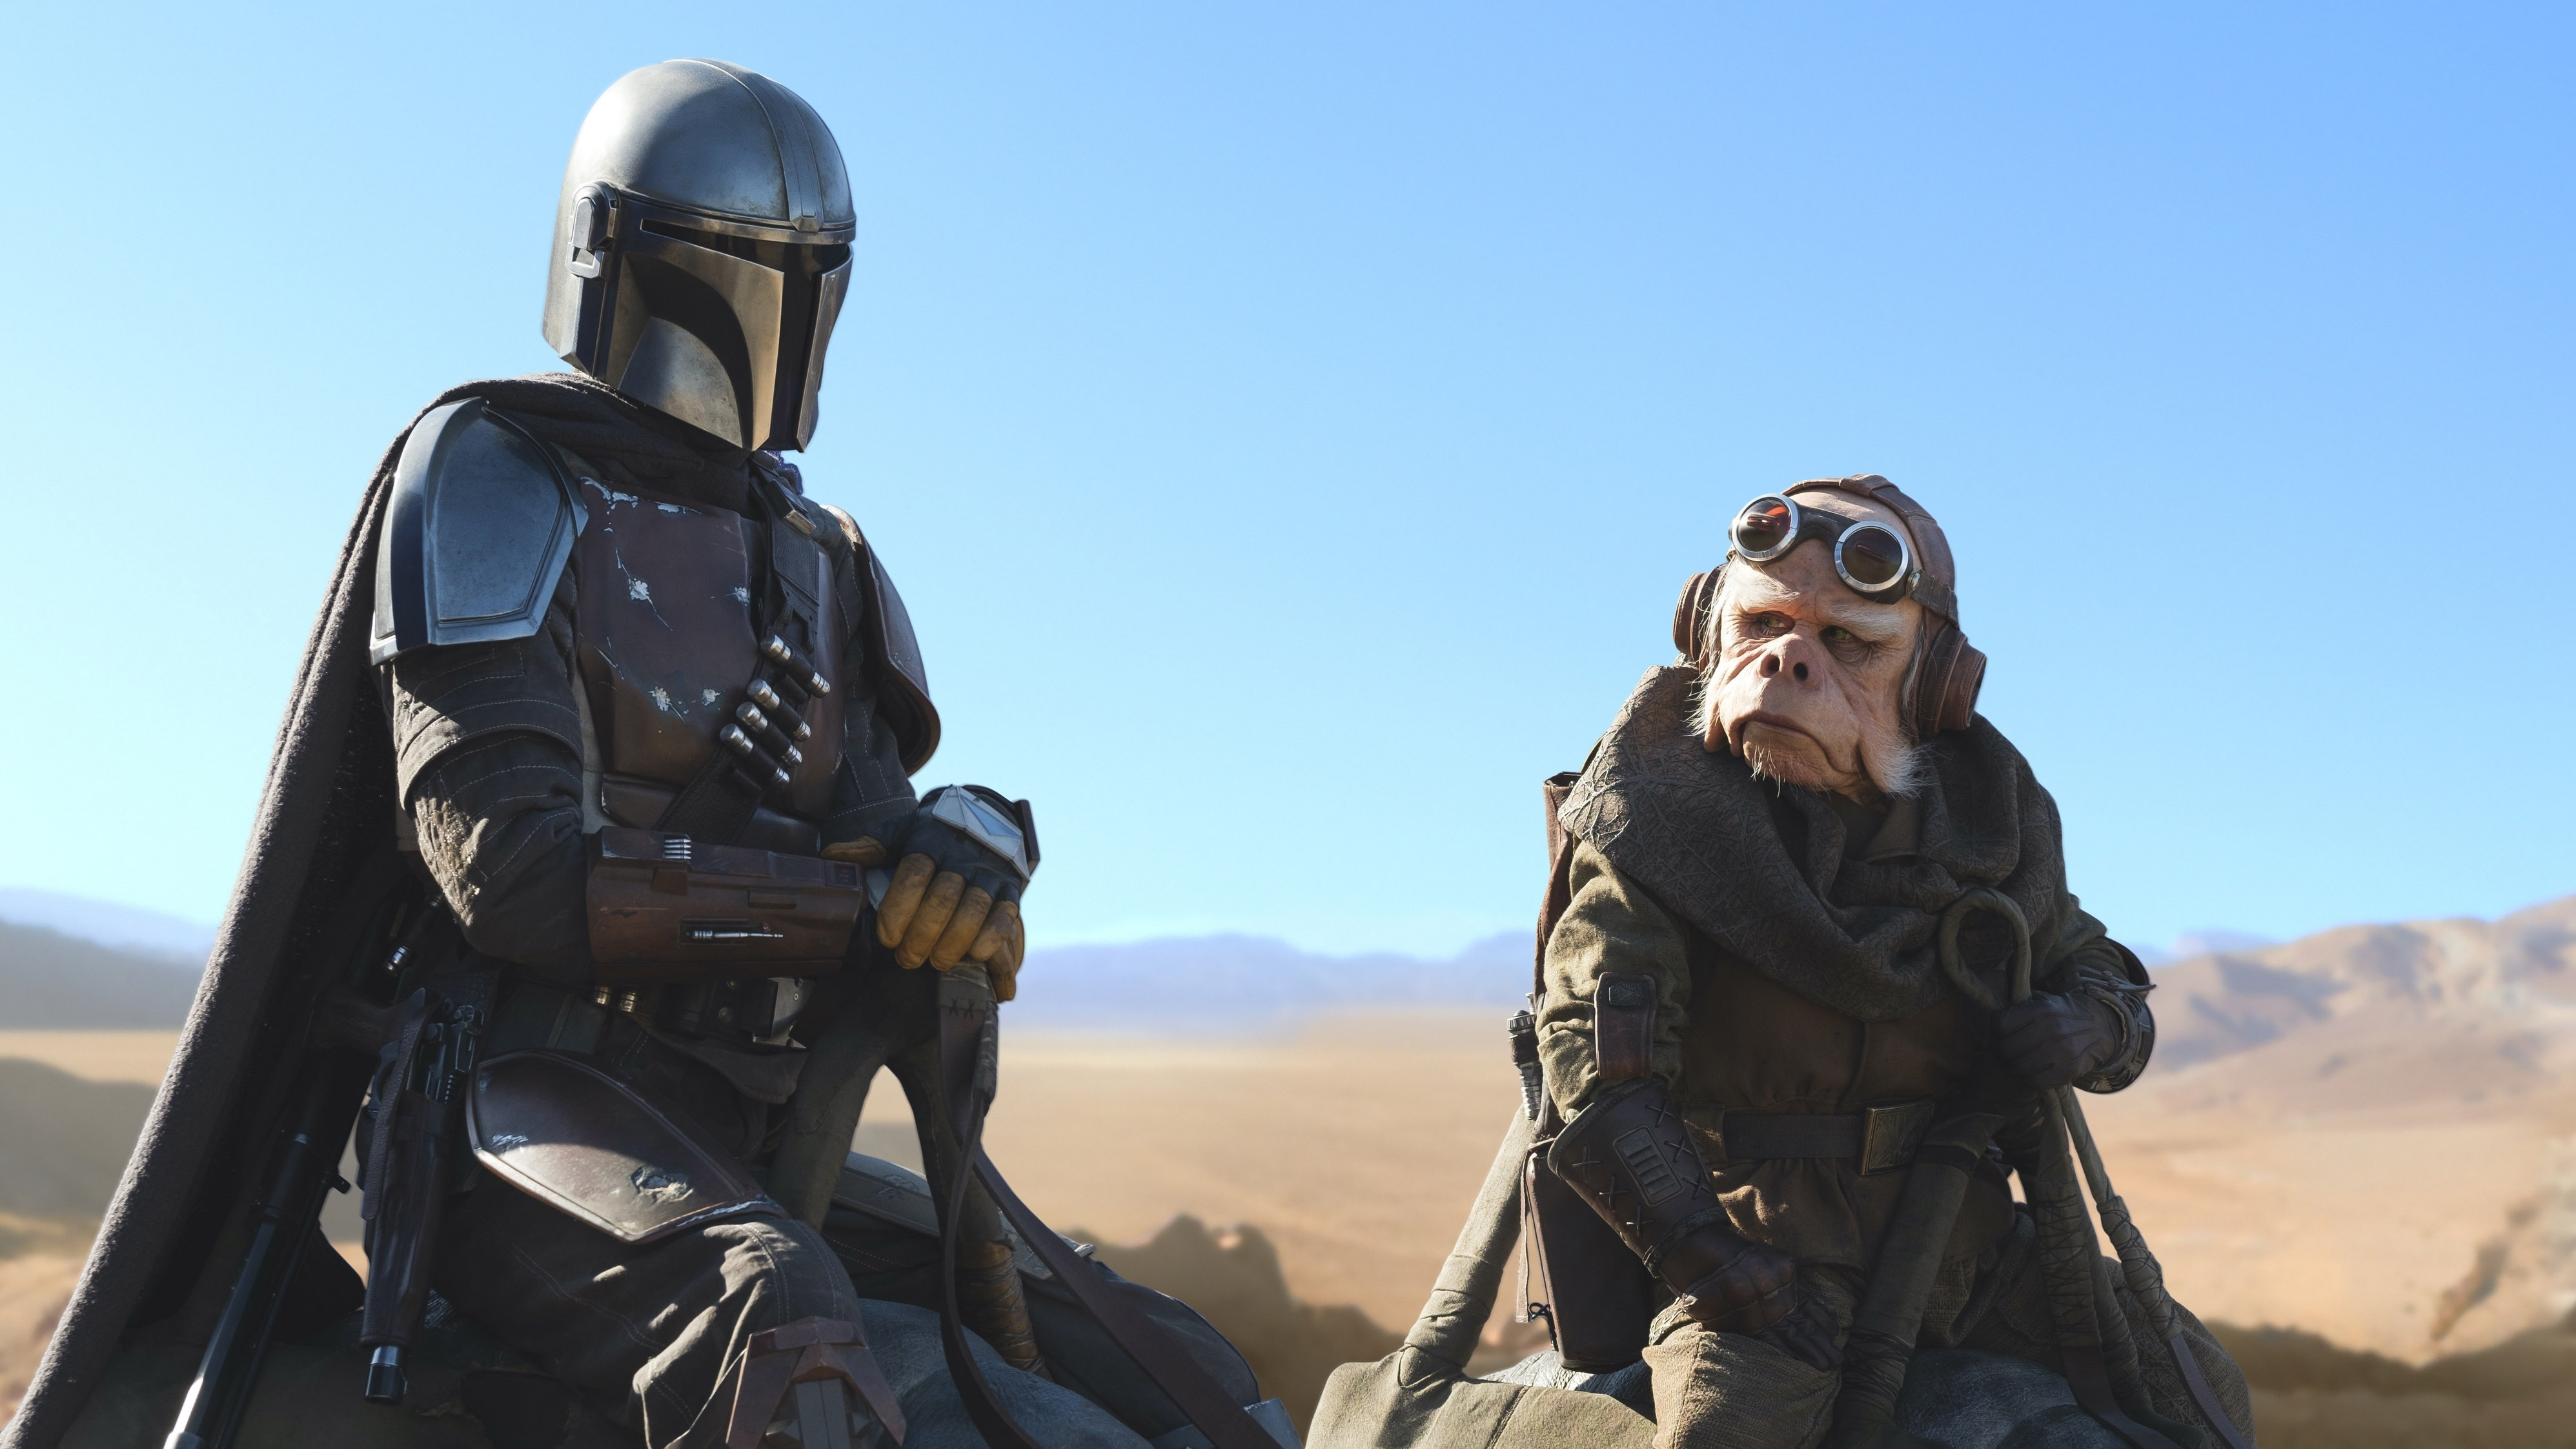 It sounds like Disney Plus UK won't have every episode of The Mandalorian at launch